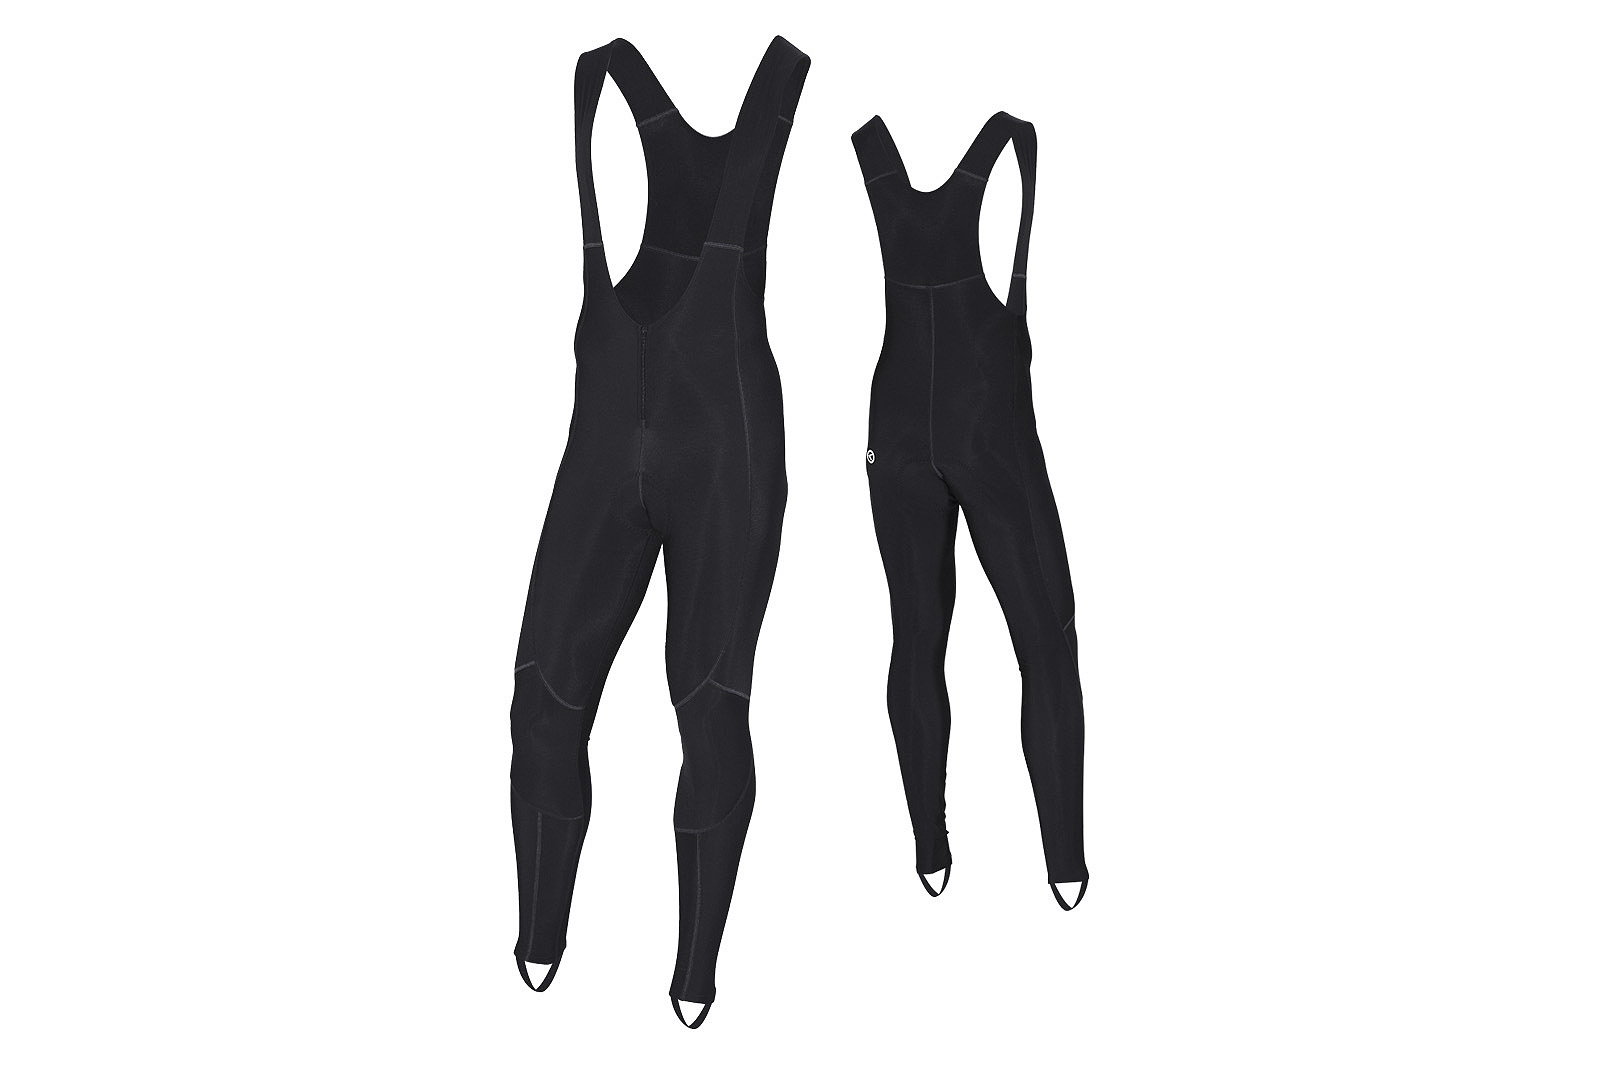 Trägerhose KELLYS THERMO RBX ohne Sitzpolster - L - Mile-Multisport